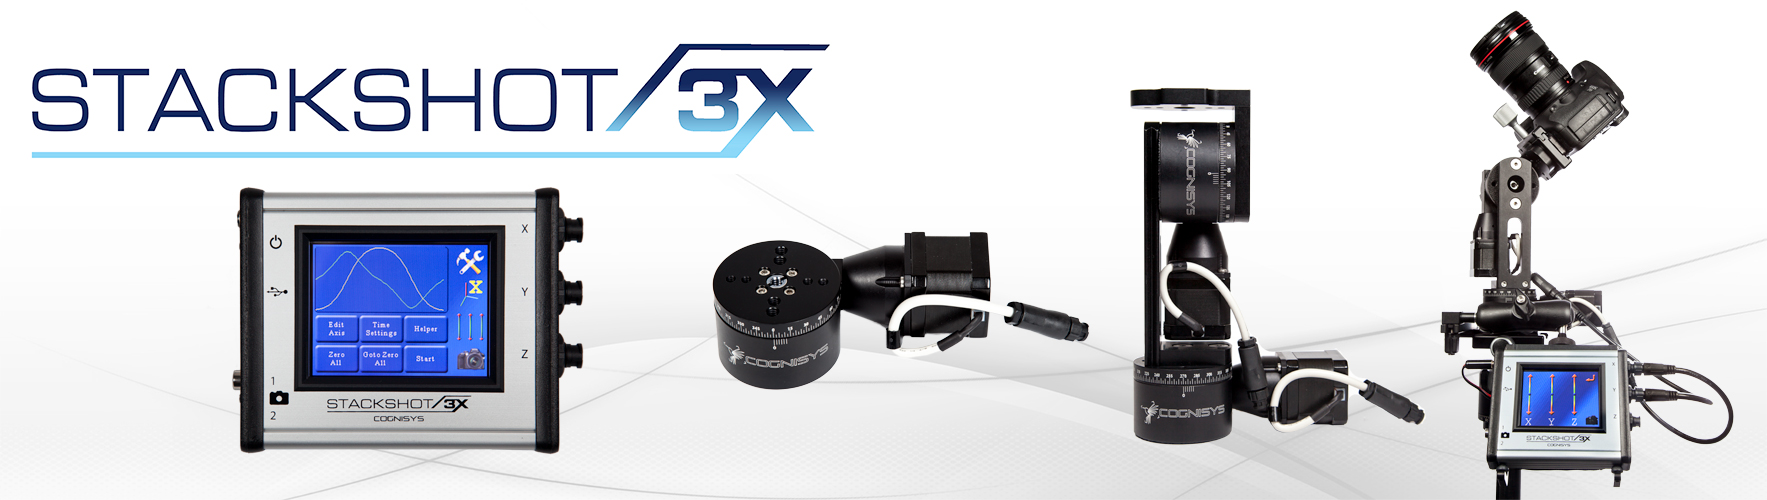 3-Axis Motion Control - StackShot 3X